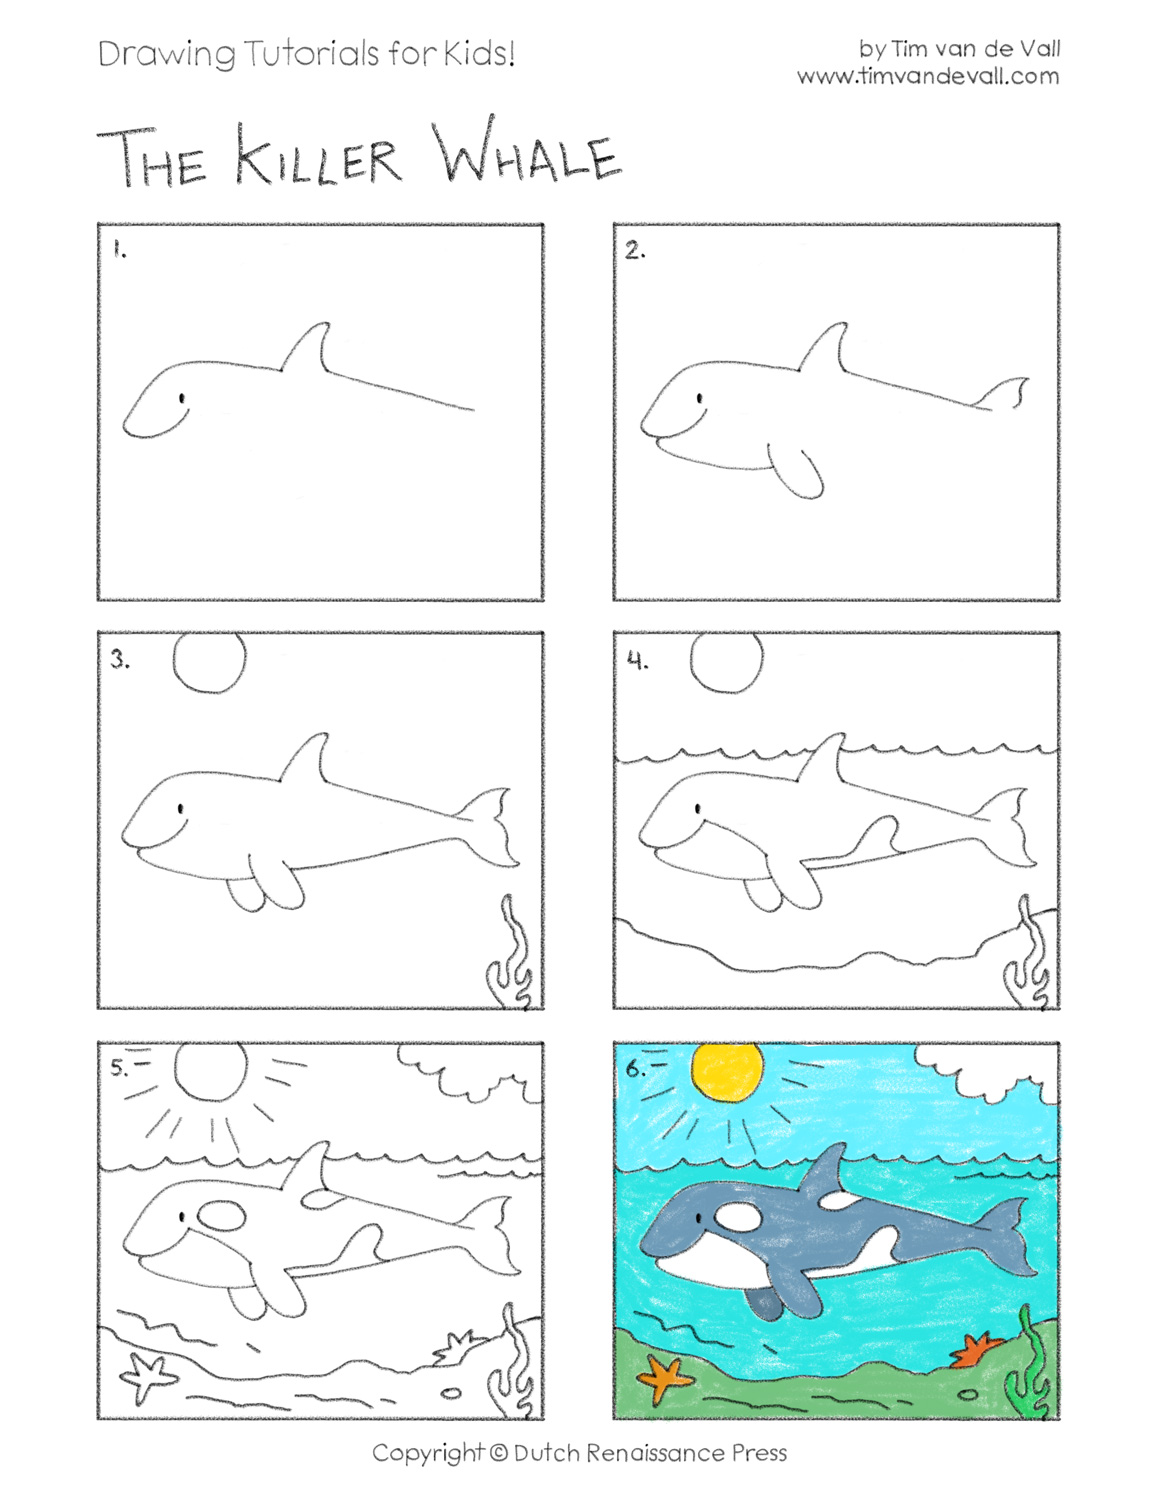 Easy Drawing Tutorials for Kids - Killer Whale / Orca